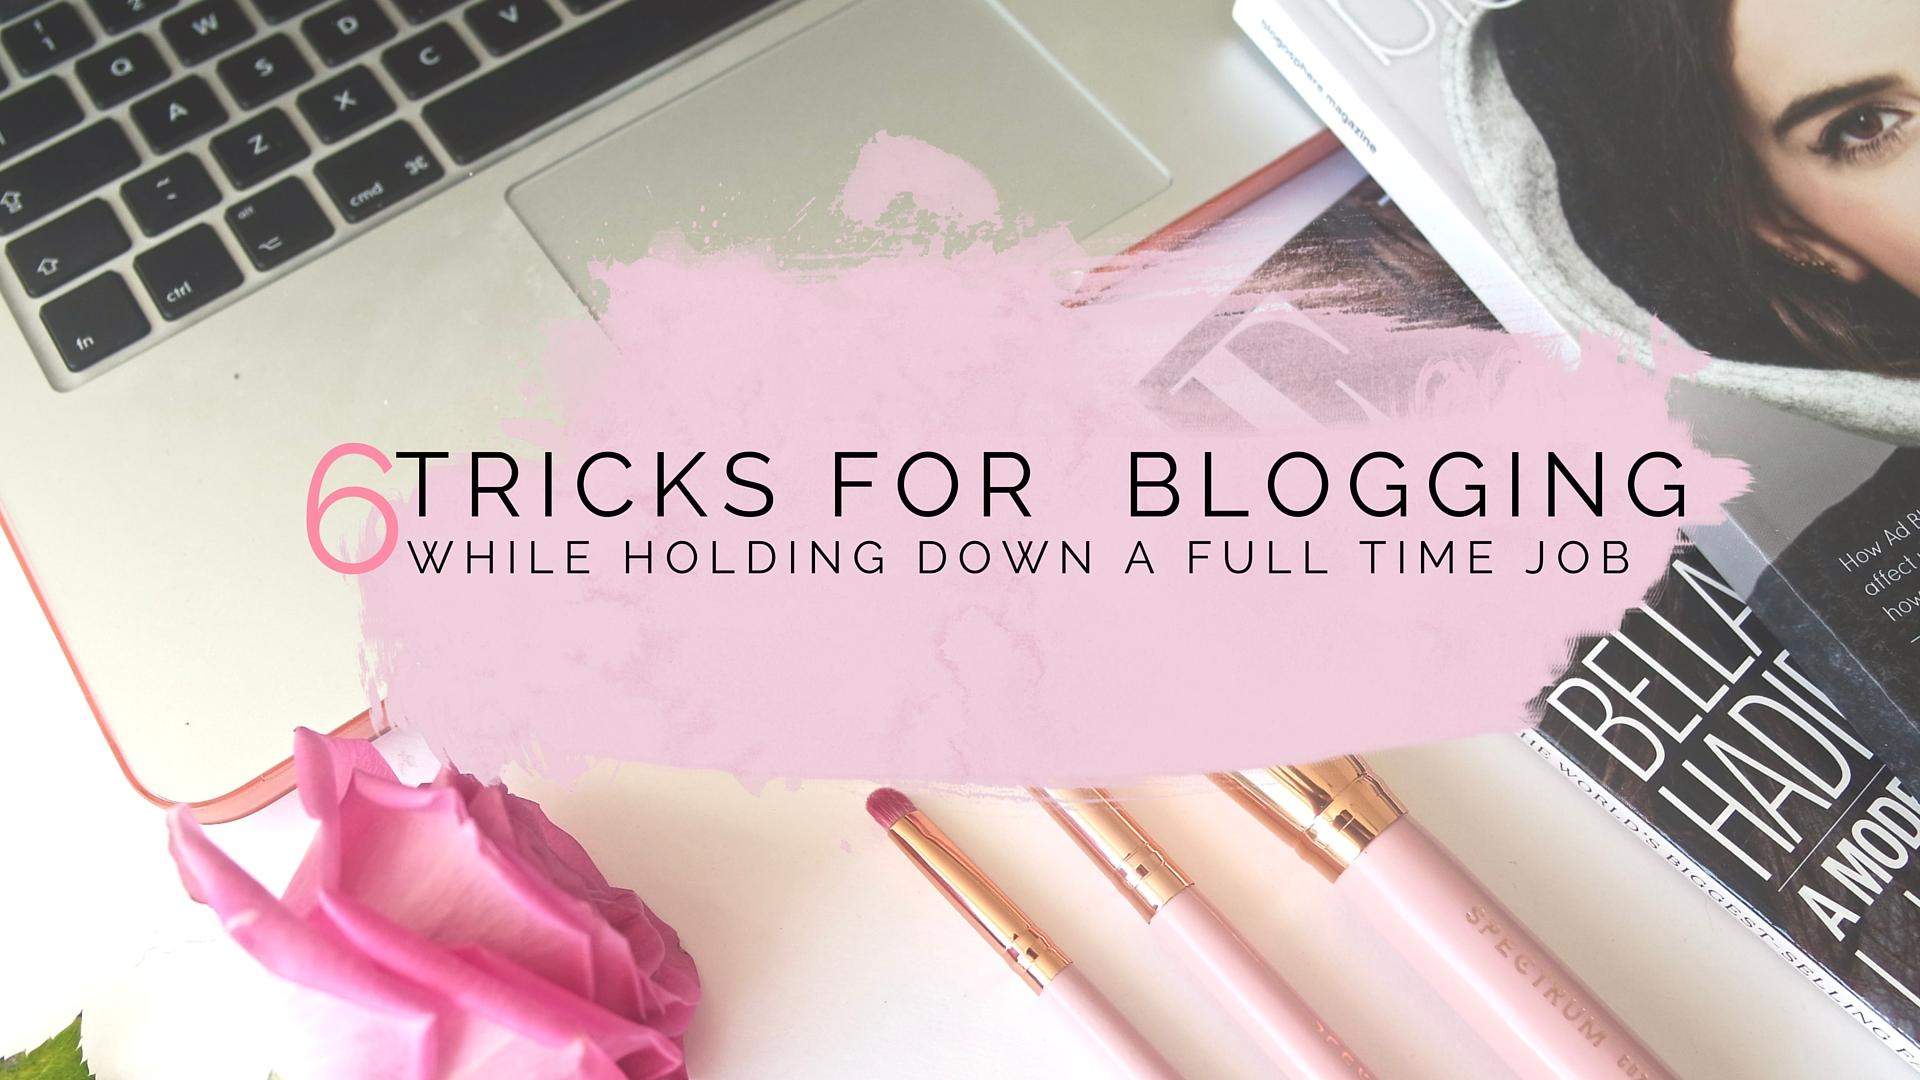 6 Tricks For Managing To Blog With A Full Time Job